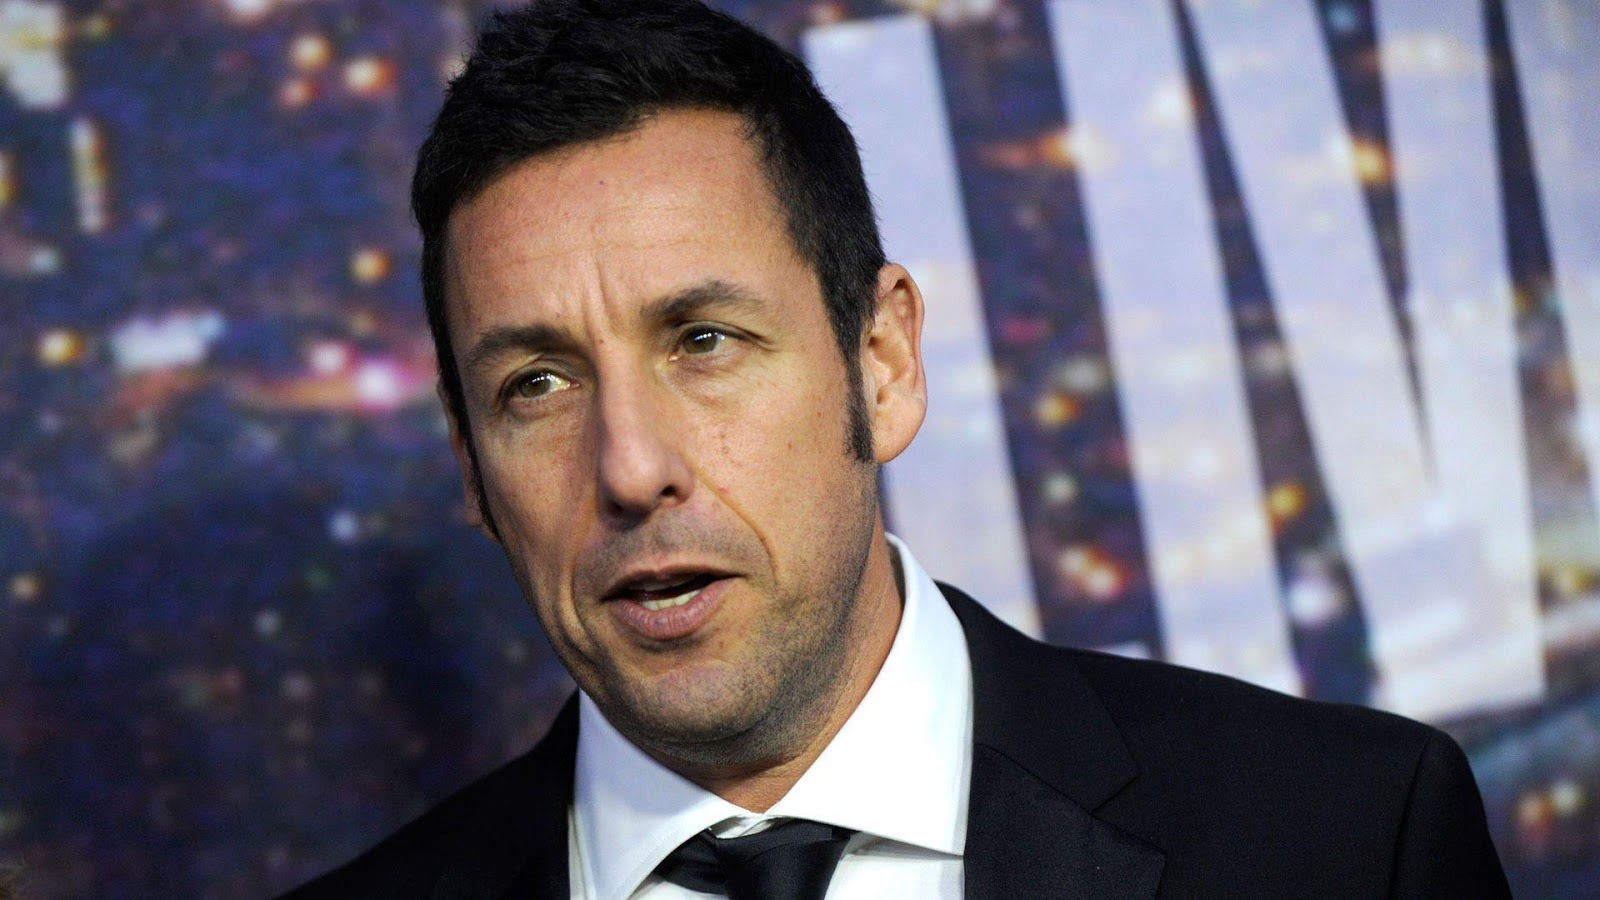 Adam Sandler Wallpapers, Pictures, Image HD wallpapers